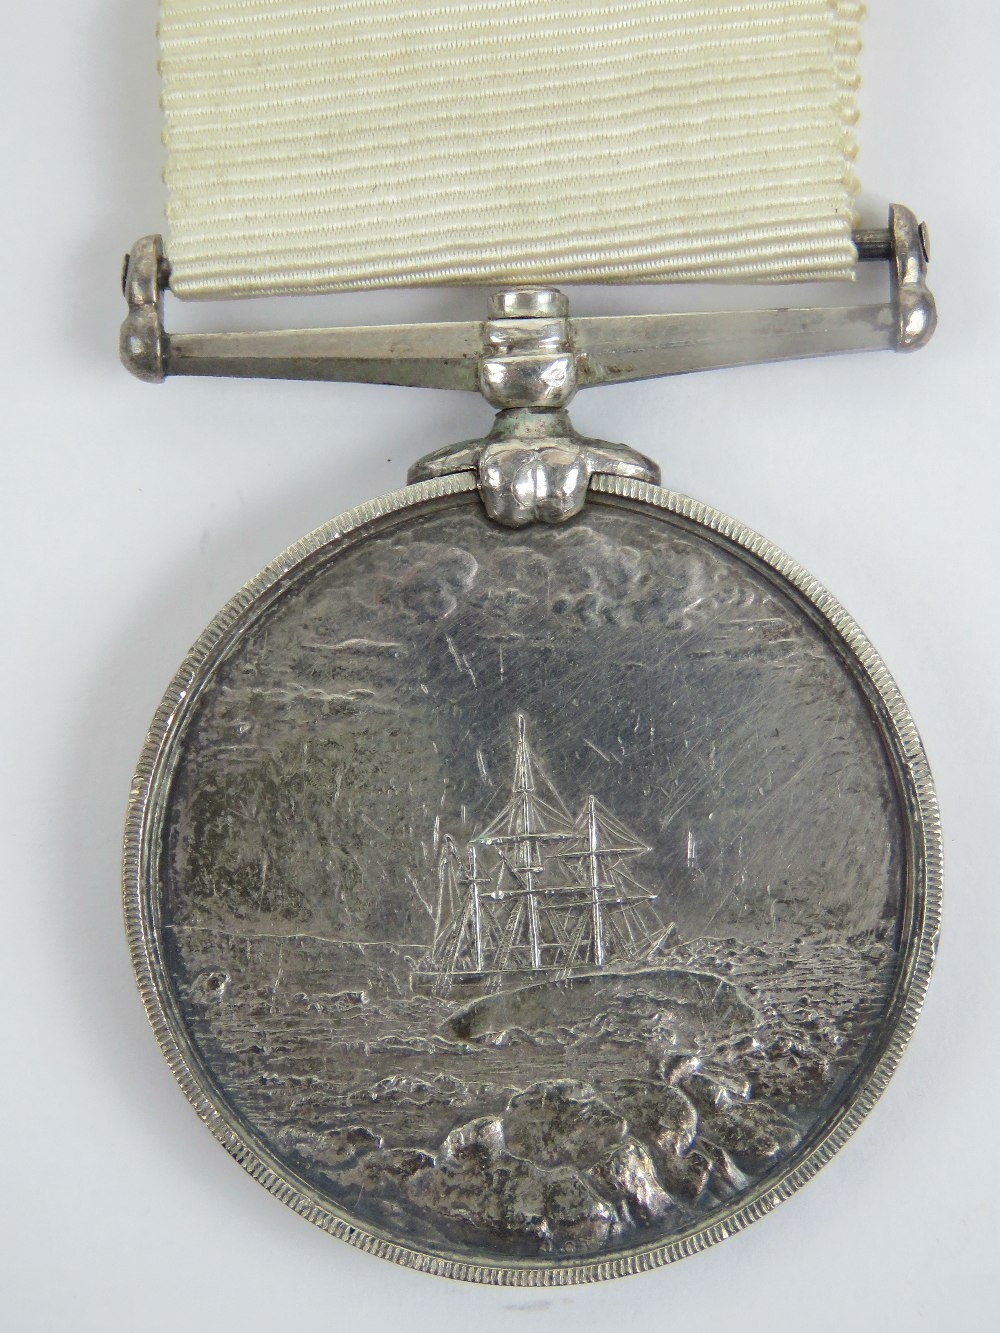 An Arctic medal with ribbon; British Arctic Expeditions of 1875-76, 'J. Cooper Pv OFFr 2 C? H.M. - Image 2 of 6